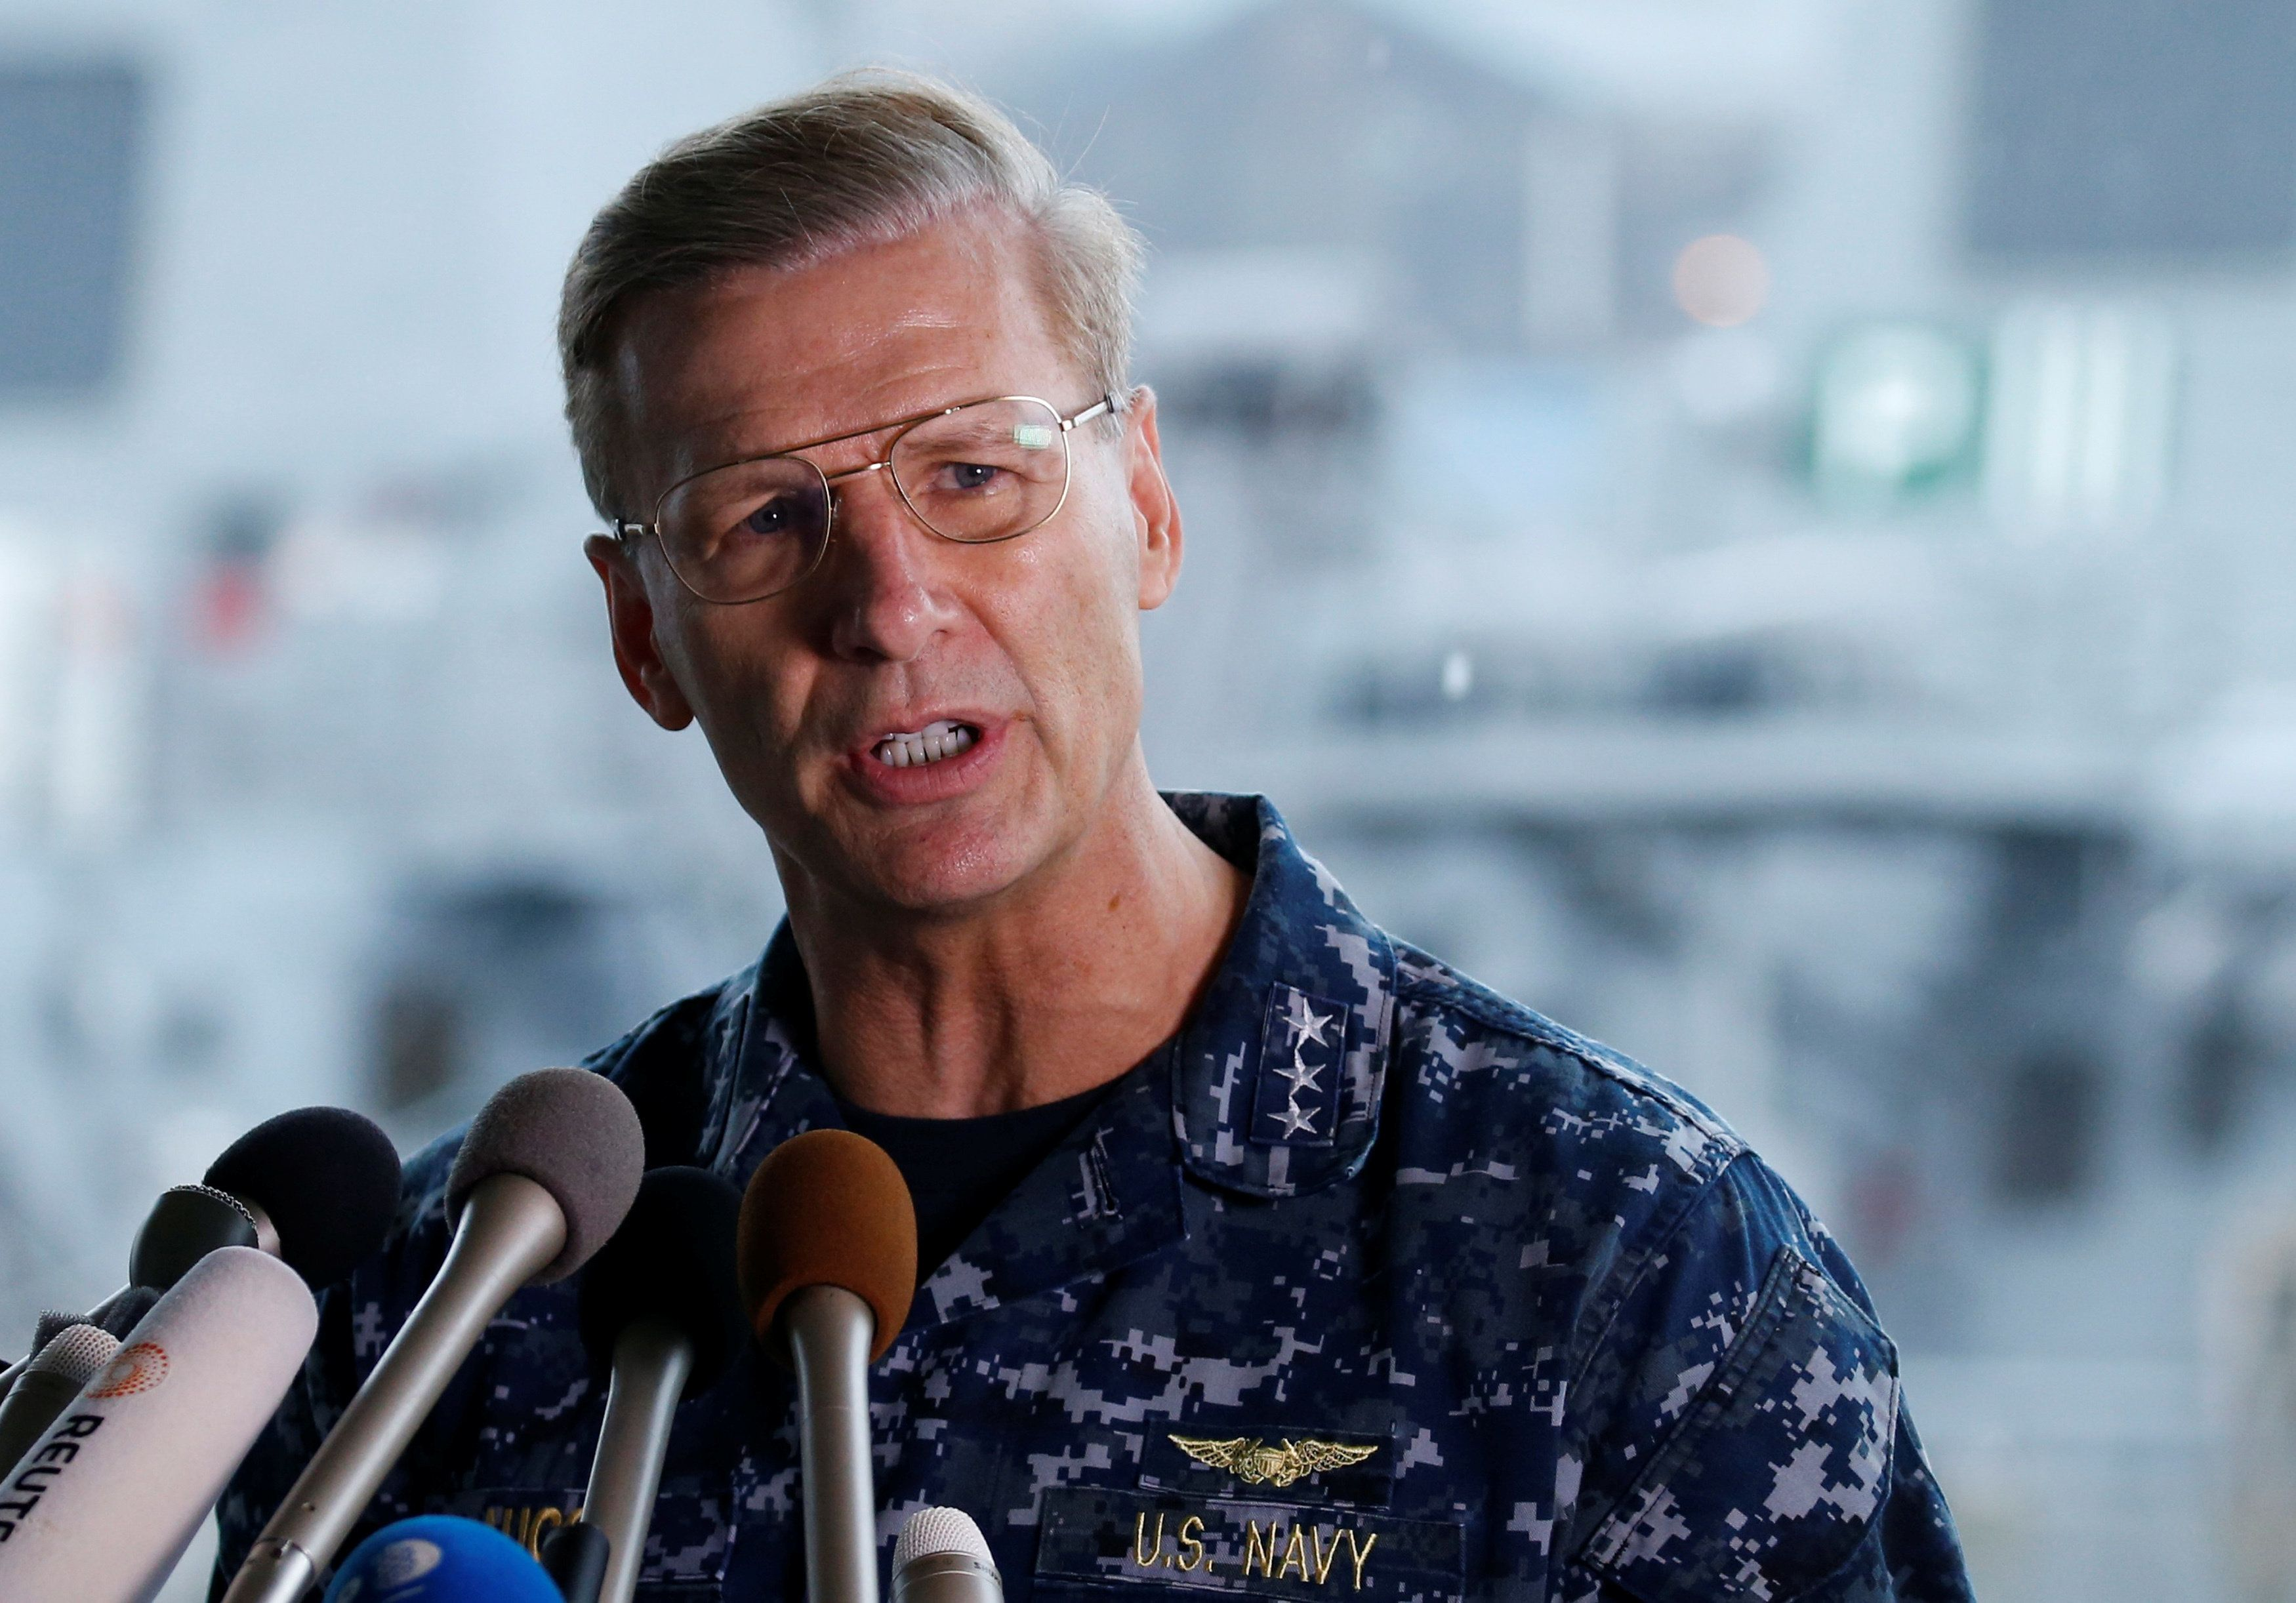 Navy Fleet Commander Ousted After Latest Ship Collision